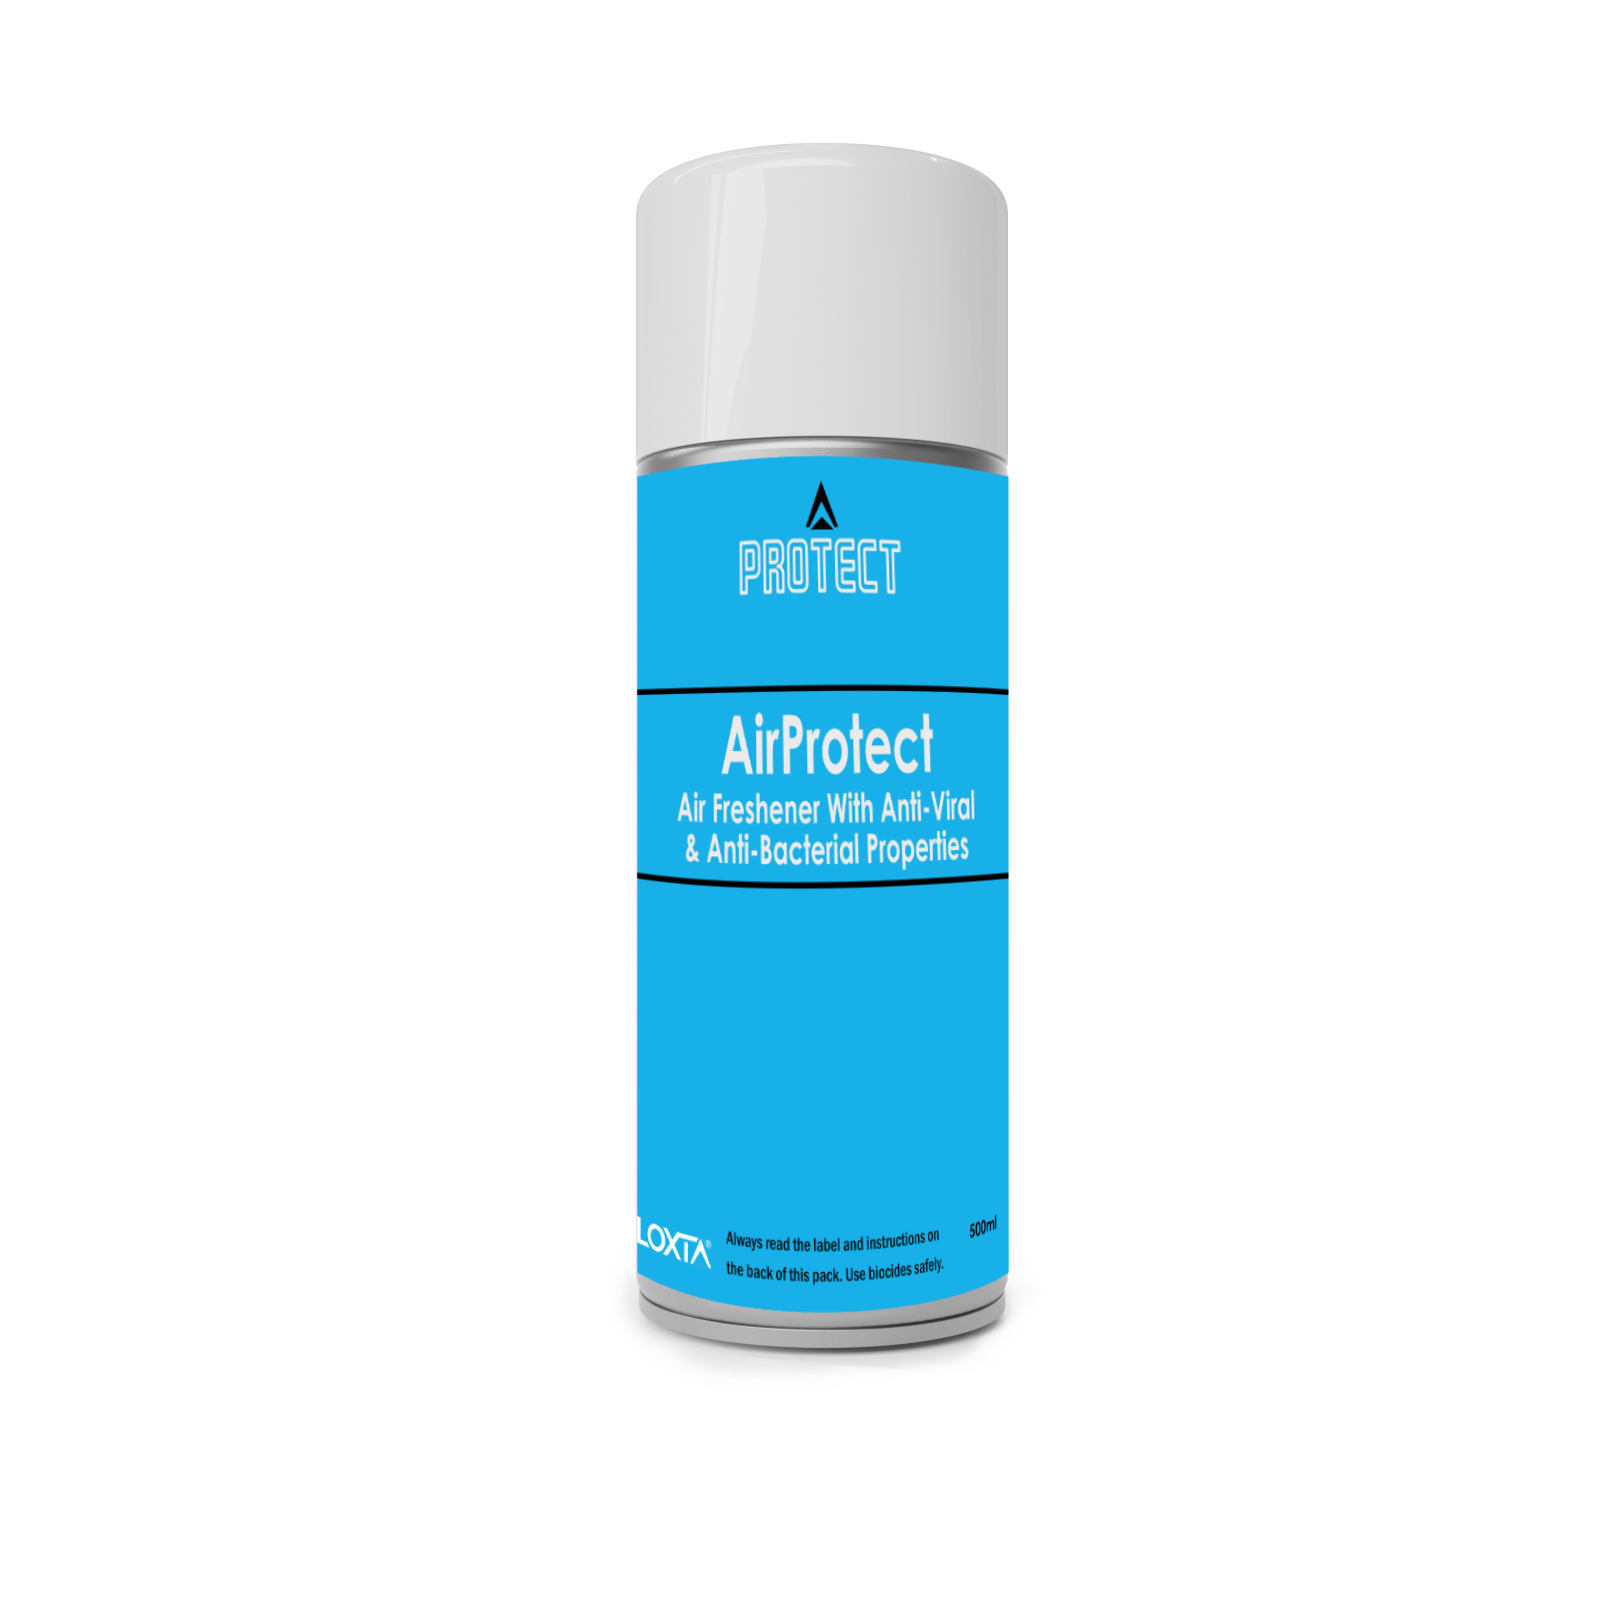 AirProtect Anti-Microbial Air Freshener